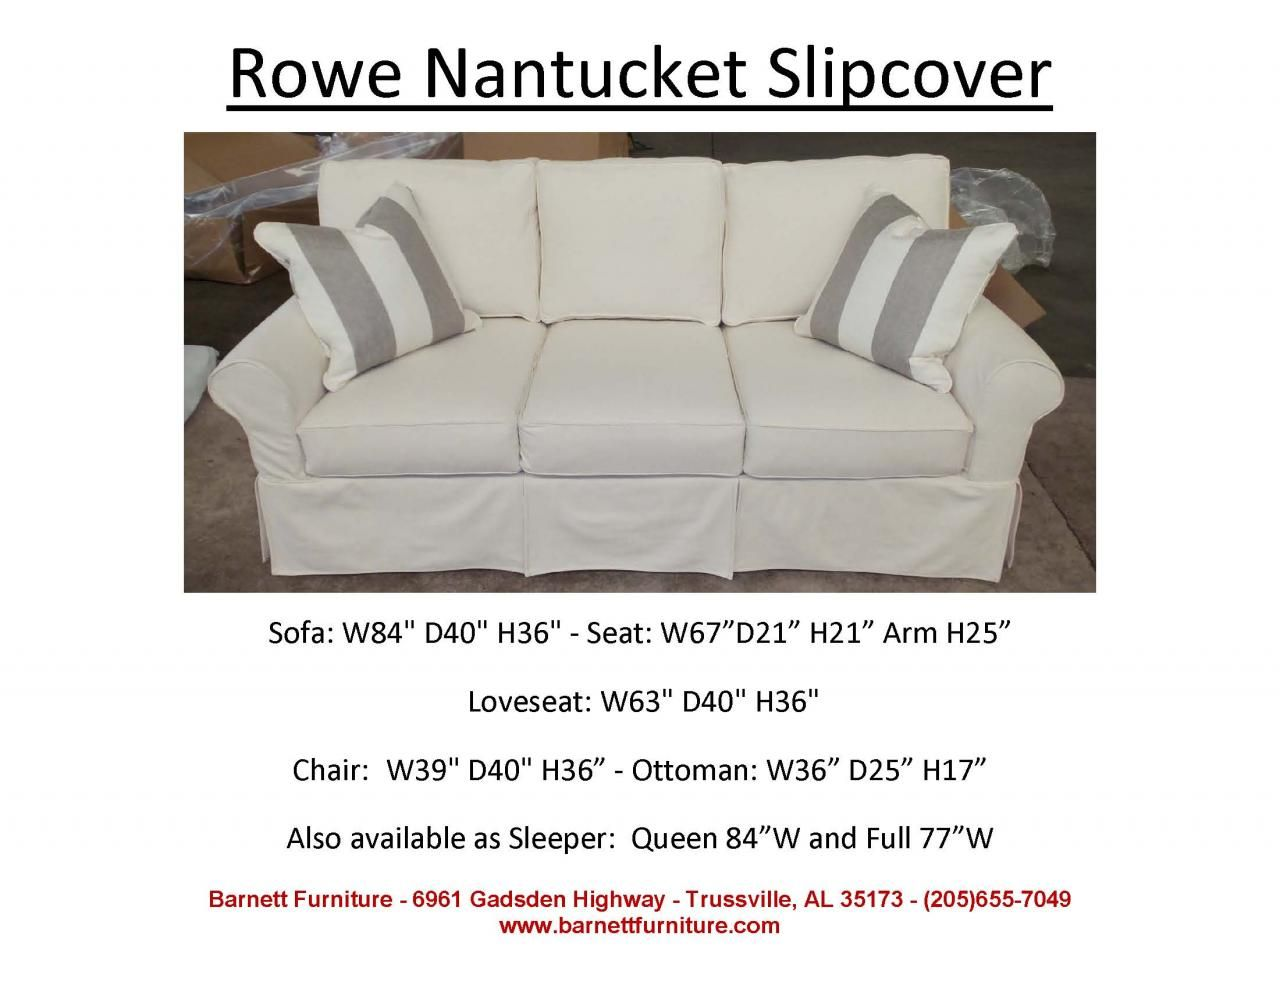 Rowe Nantucket Slipcover Sofa You Choose The Fabric